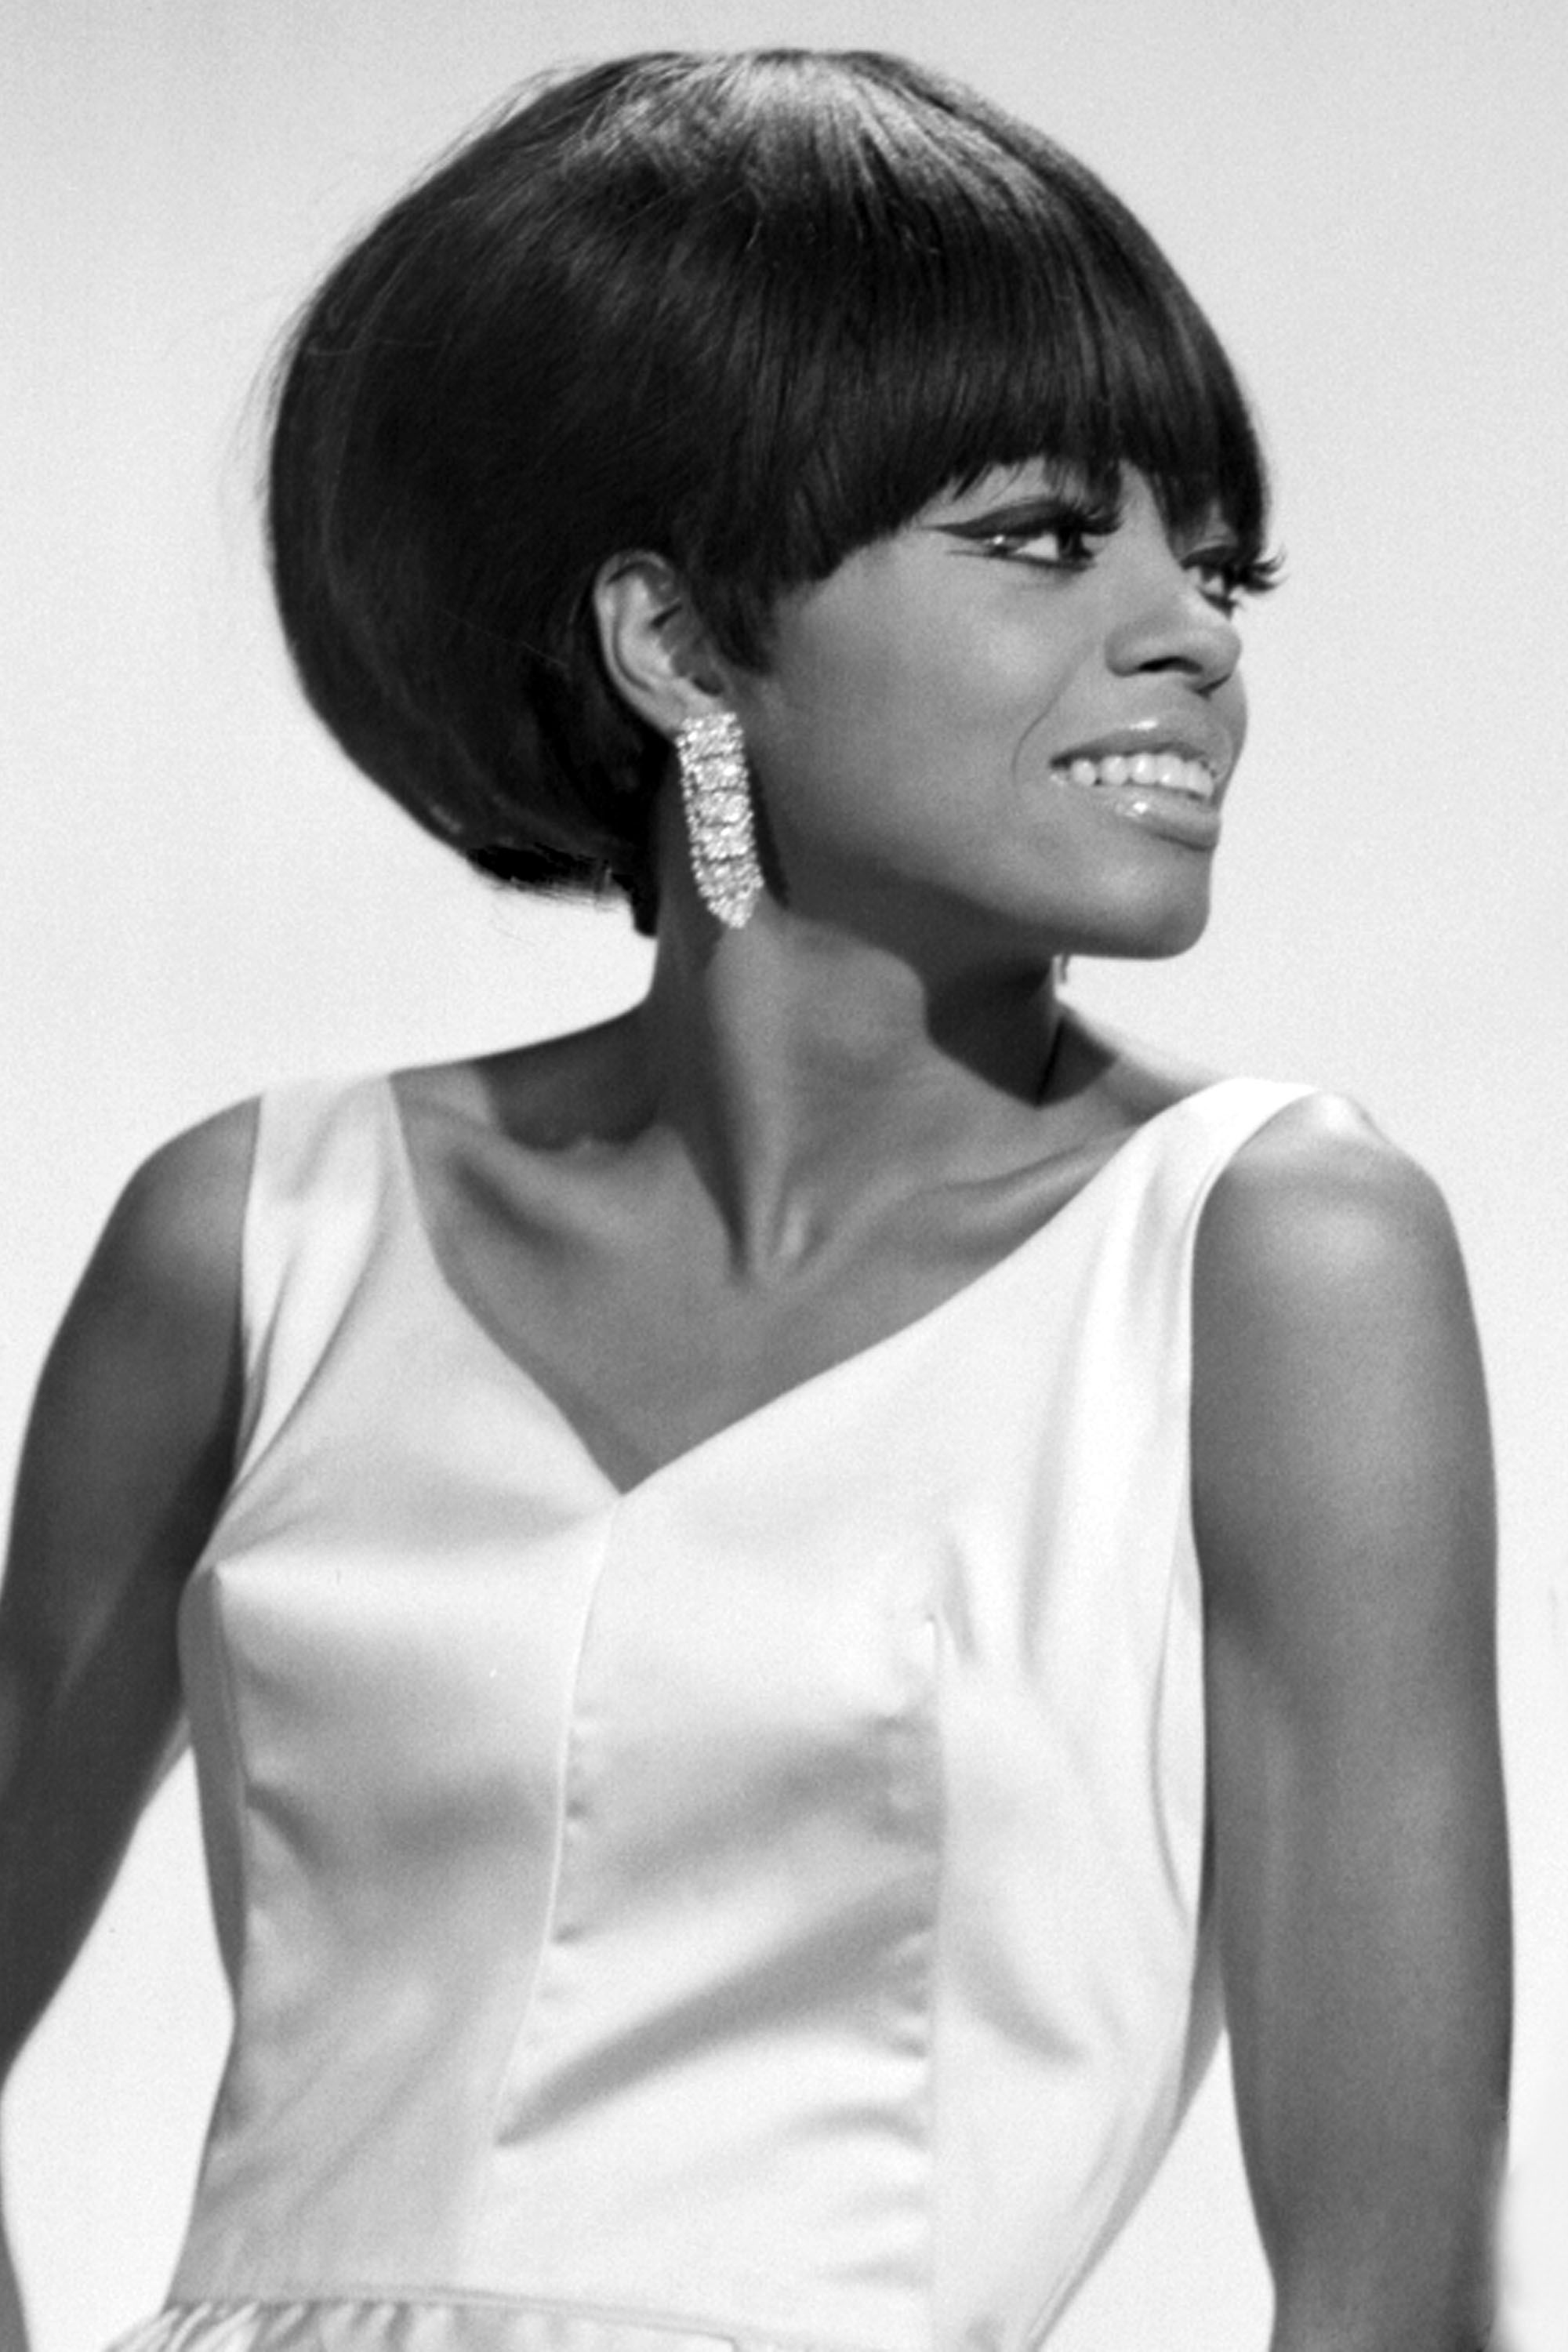 NEW YORK - CIRCA 1964:  Singer Diana Ross of The Supremes poses for a portrait circa 1964 in New York City, New York.  (Photo by James Kriegsmann/Michael Ochs Archives/Getty Images)